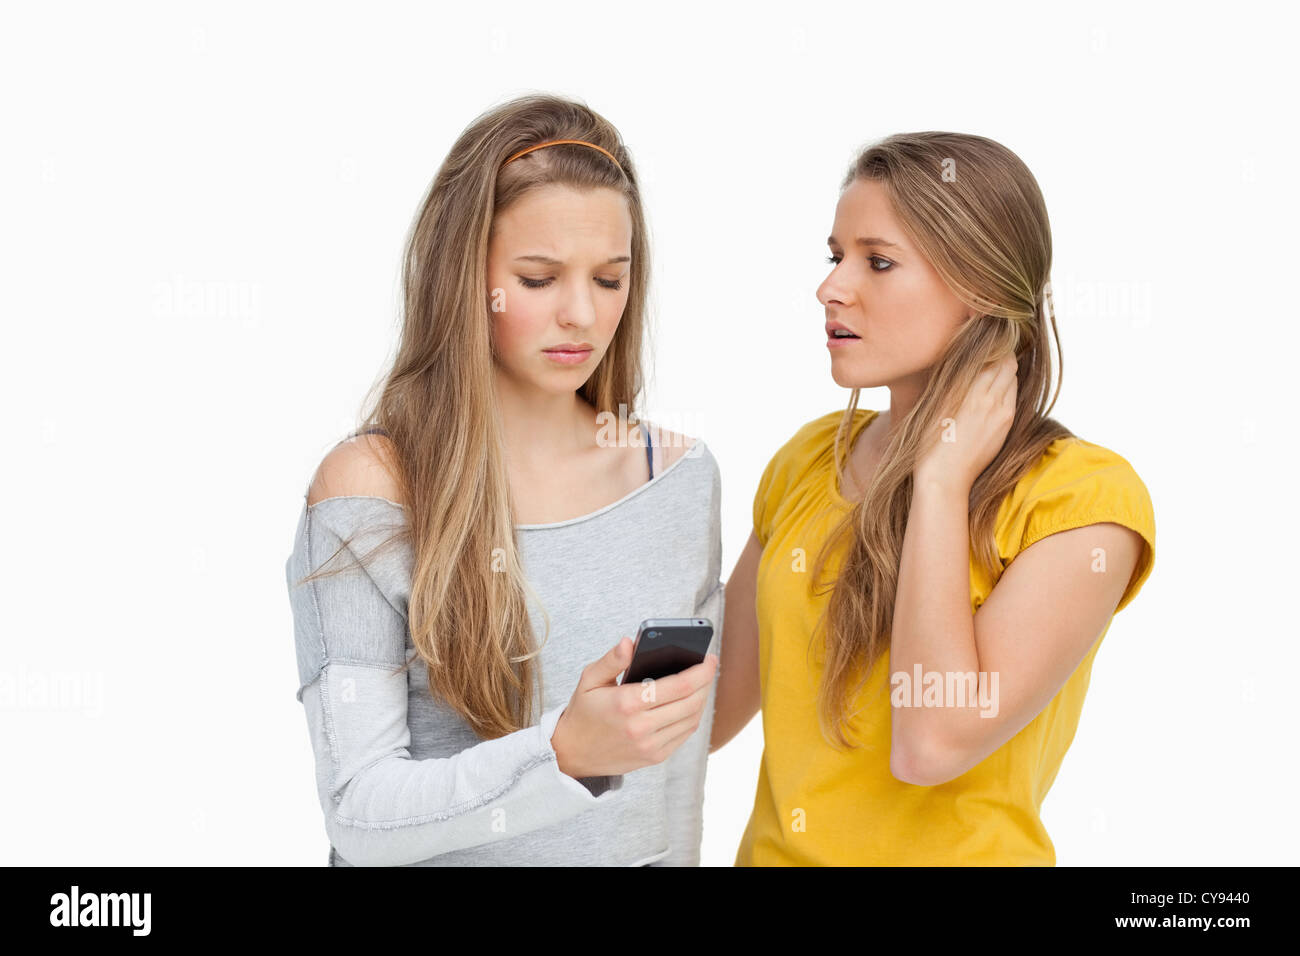 Upset young woman consoled by her friend - Stock Image